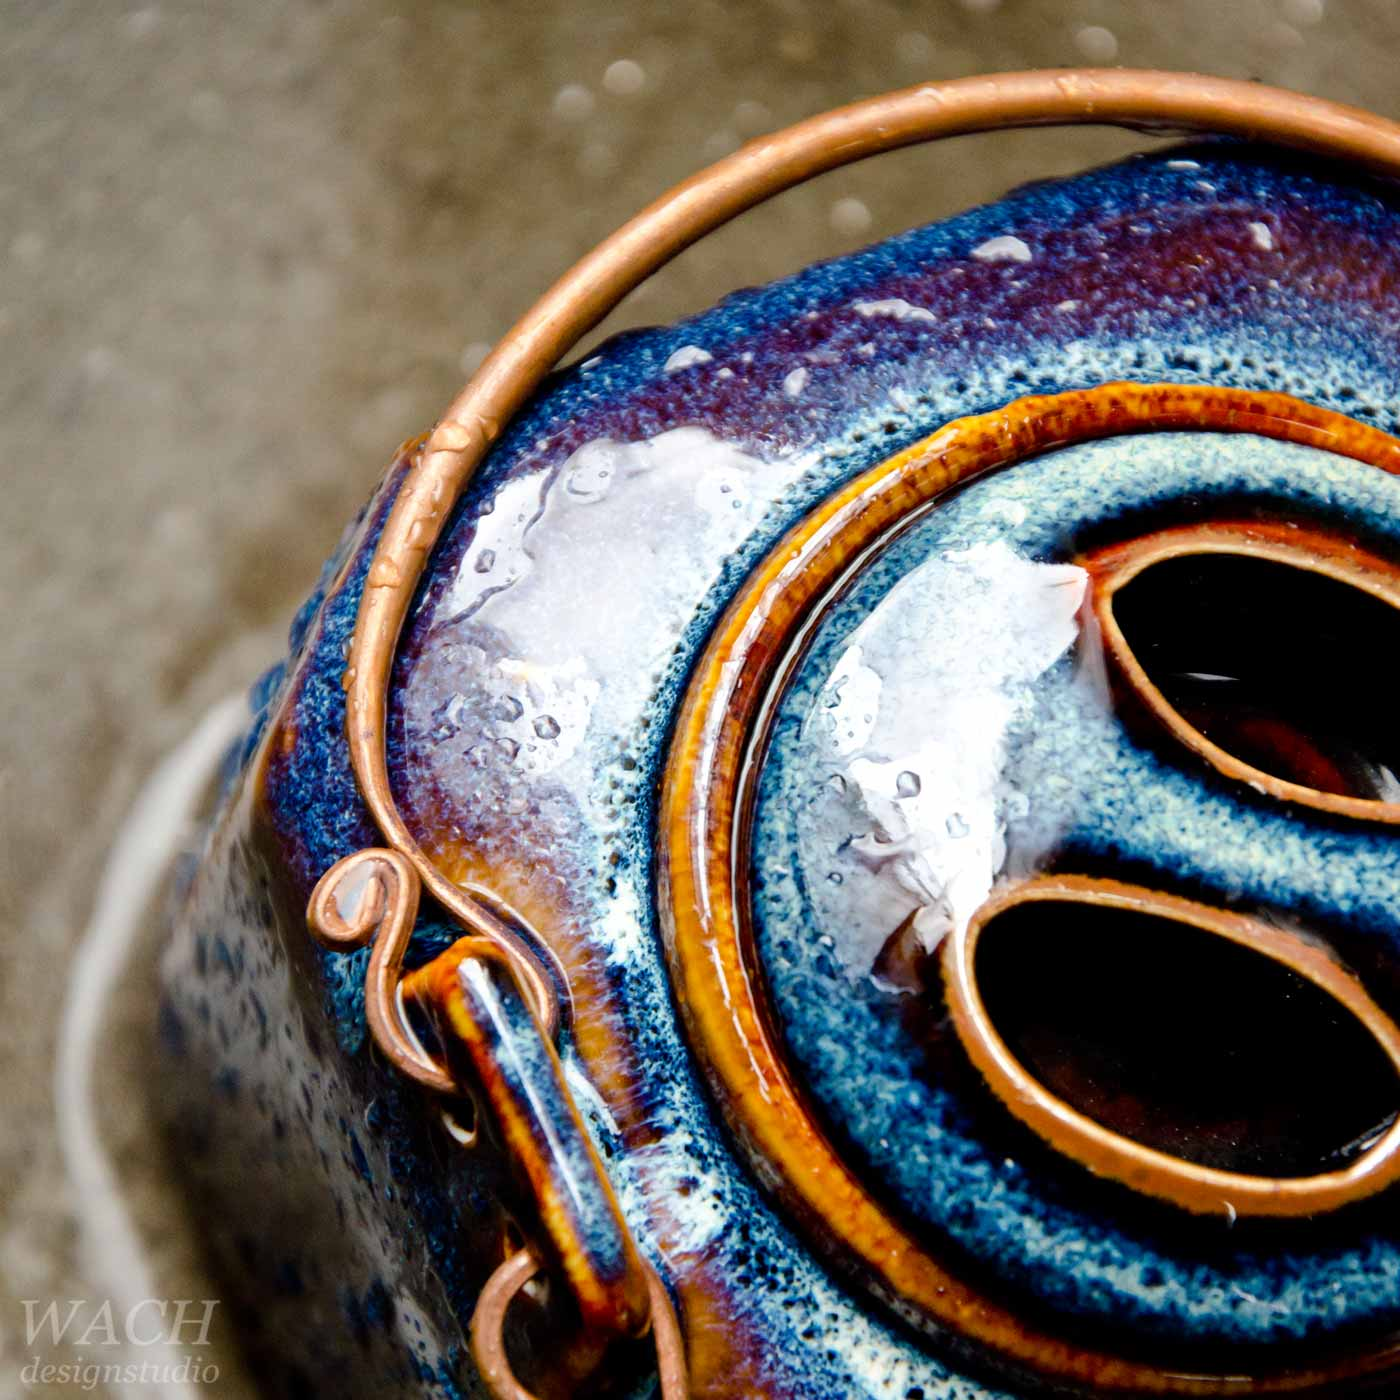 Ocean blue Phuc Duy Teapot photographed in the rain